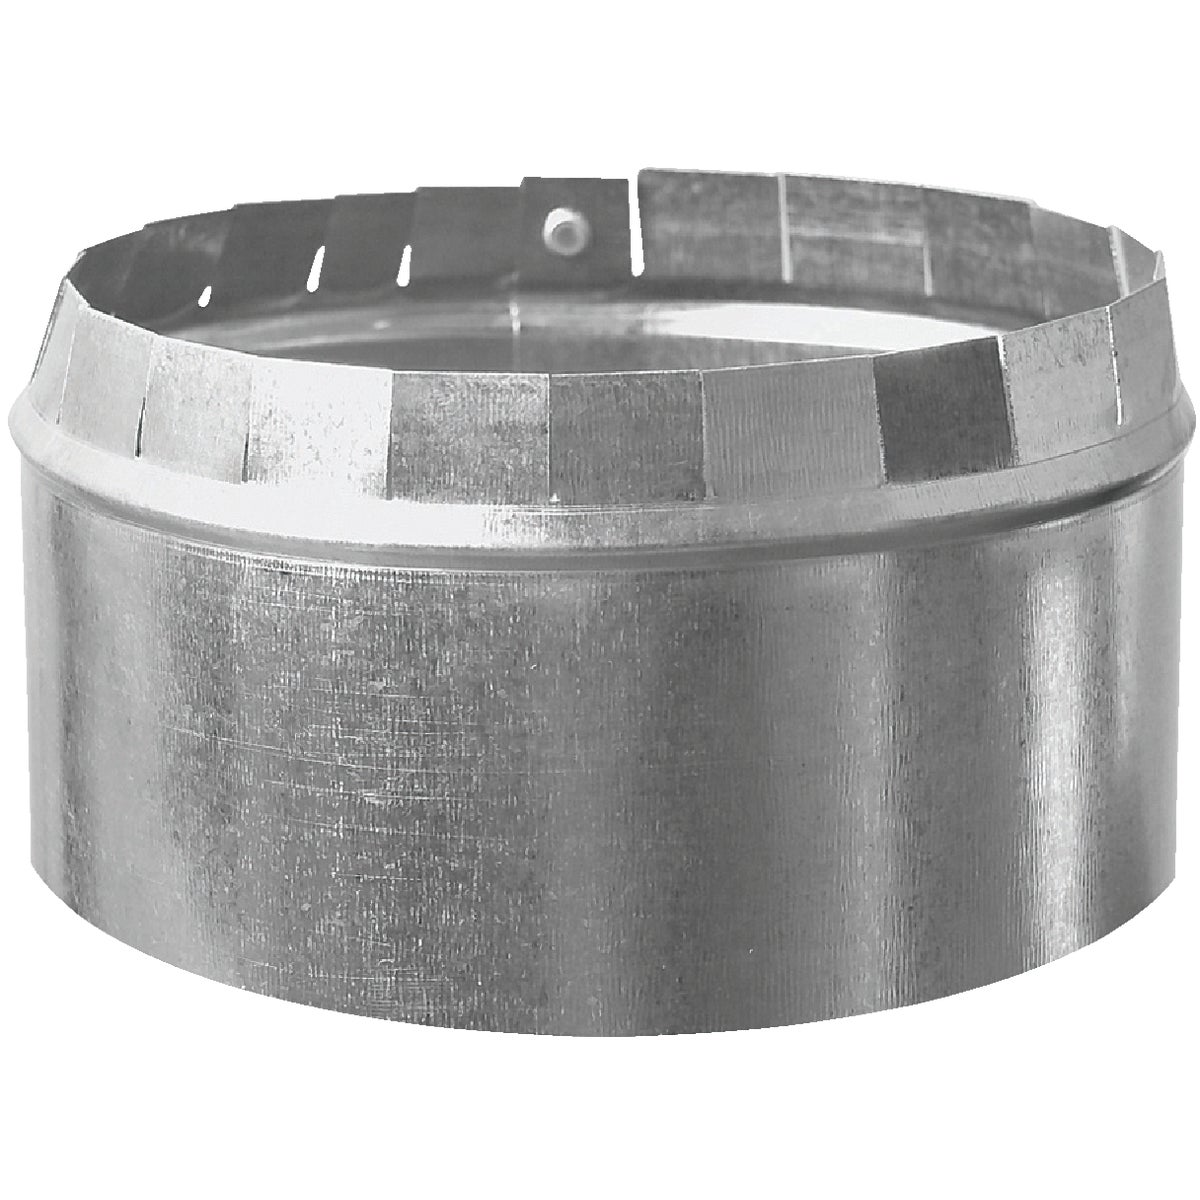 "8"" SHORT COLLAR - GV1401 by Imperial Mfg Group"